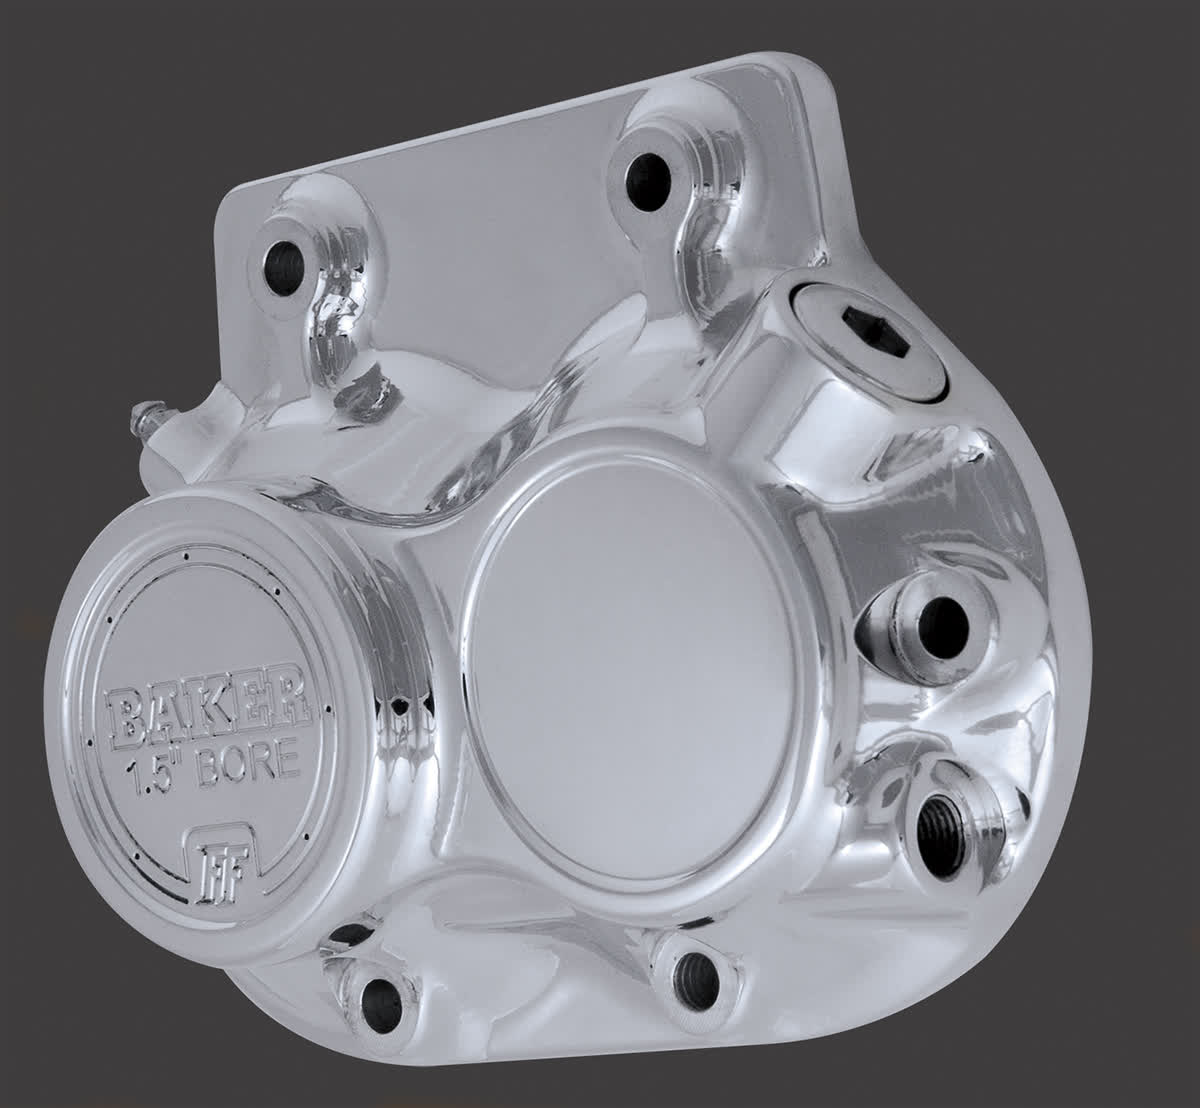 Baker 455-56C Function-Formed Transmission Hydraulic Side Cover